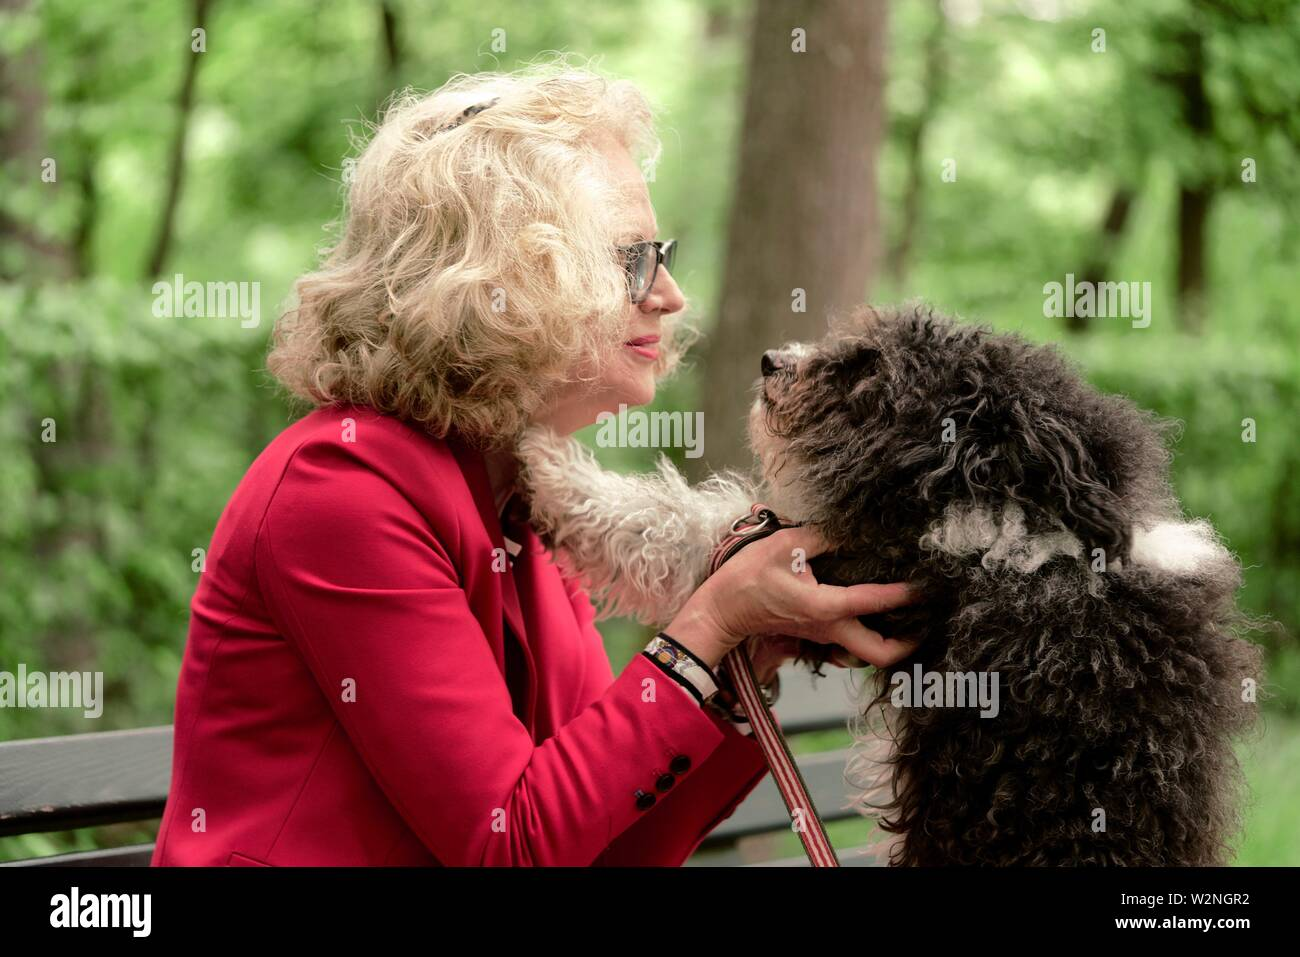 senior woman (67 years old) with dog in park, face to face, in Nymphenburg, Munich, Germany. - Stock Image